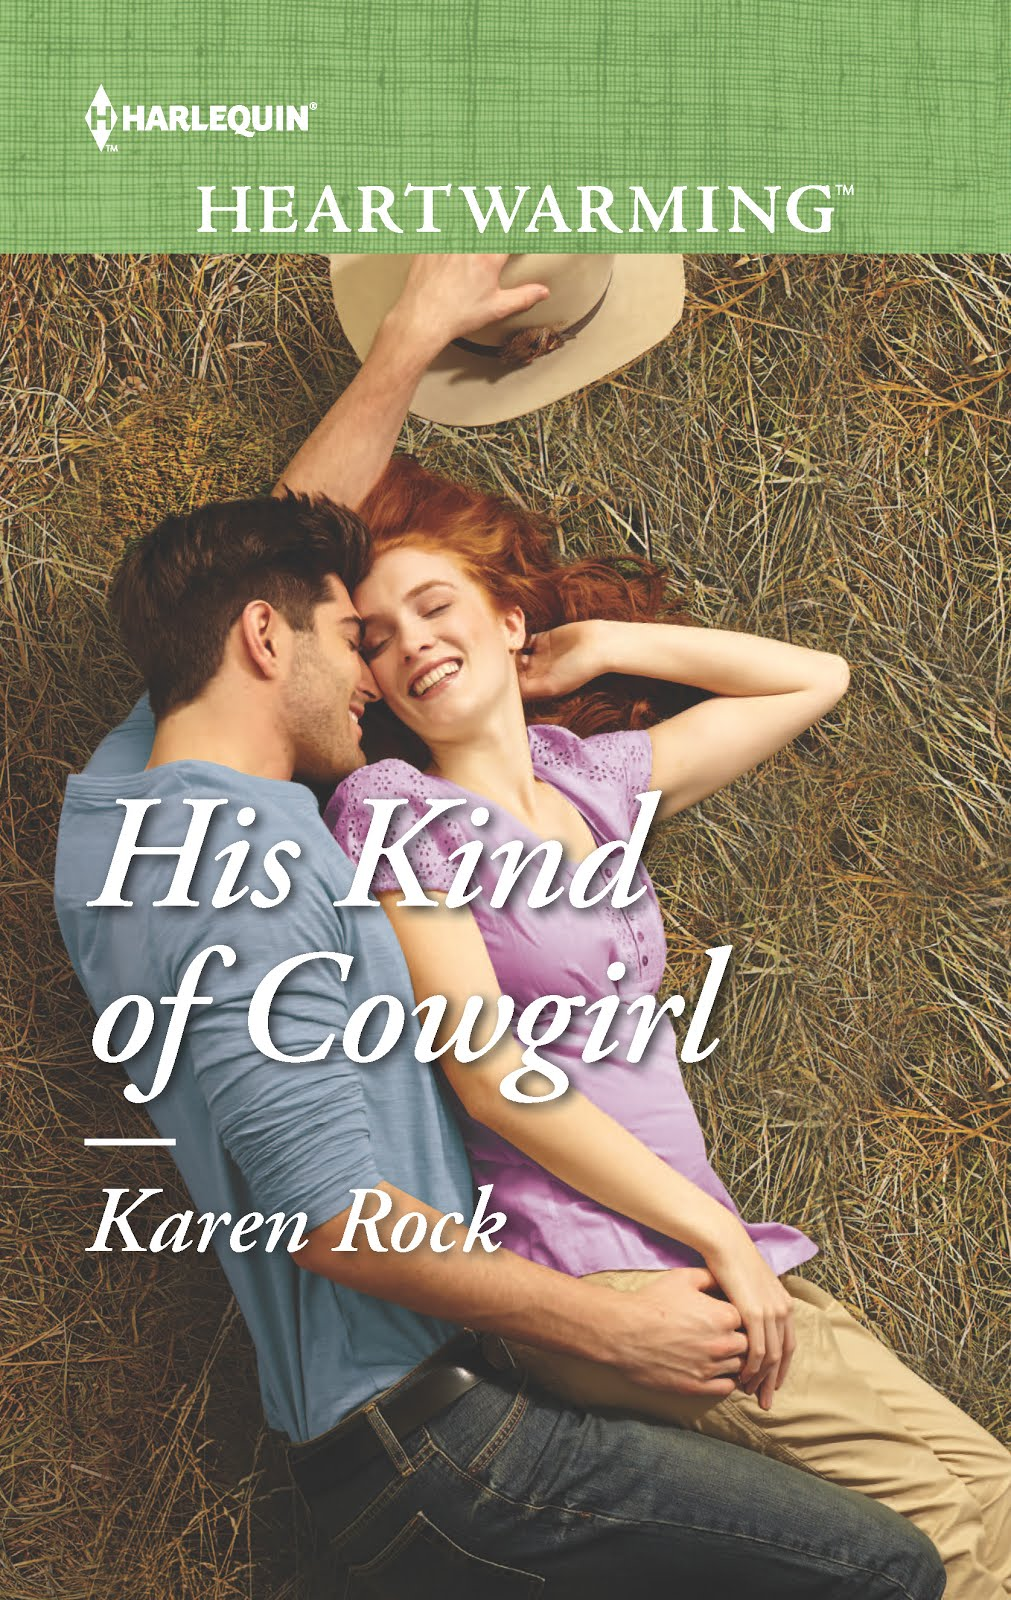 Karen Rock Author